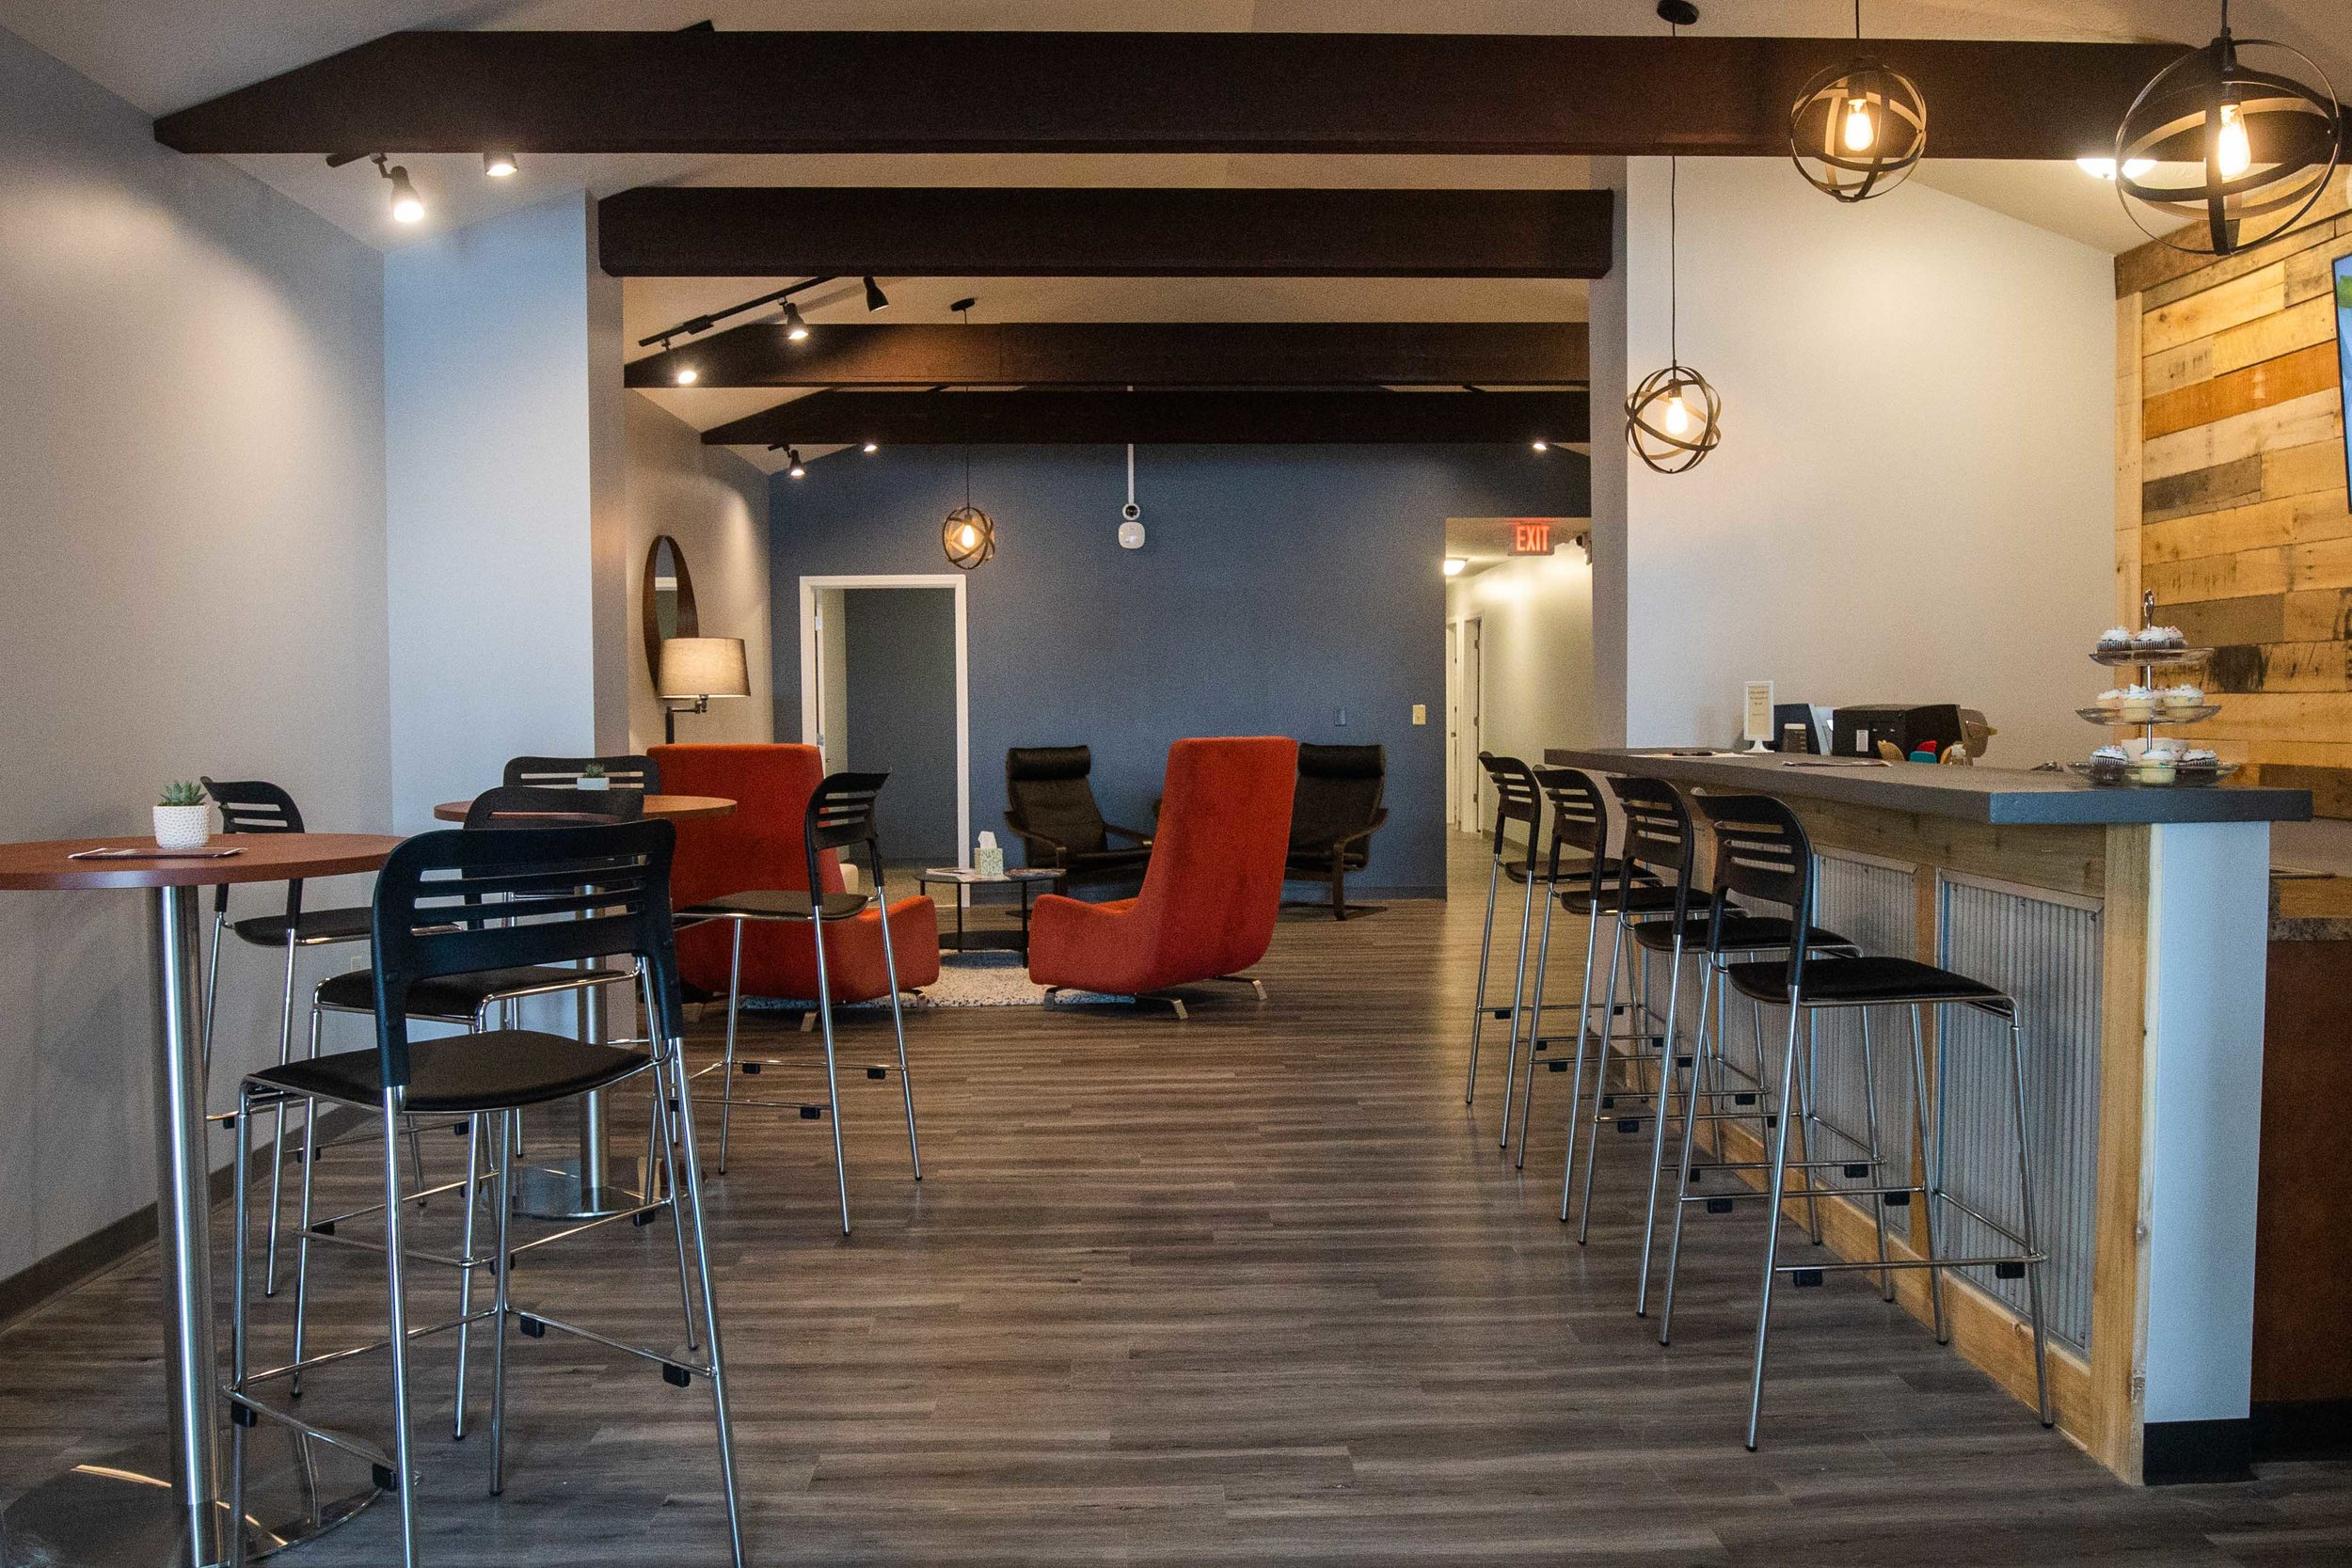 Event Space - Hold an annual meeting, birthday party, business outing, or other event in our event space.$60/Hour During Business Hours (9am-5pm)$75/Hour Non-Business Hours